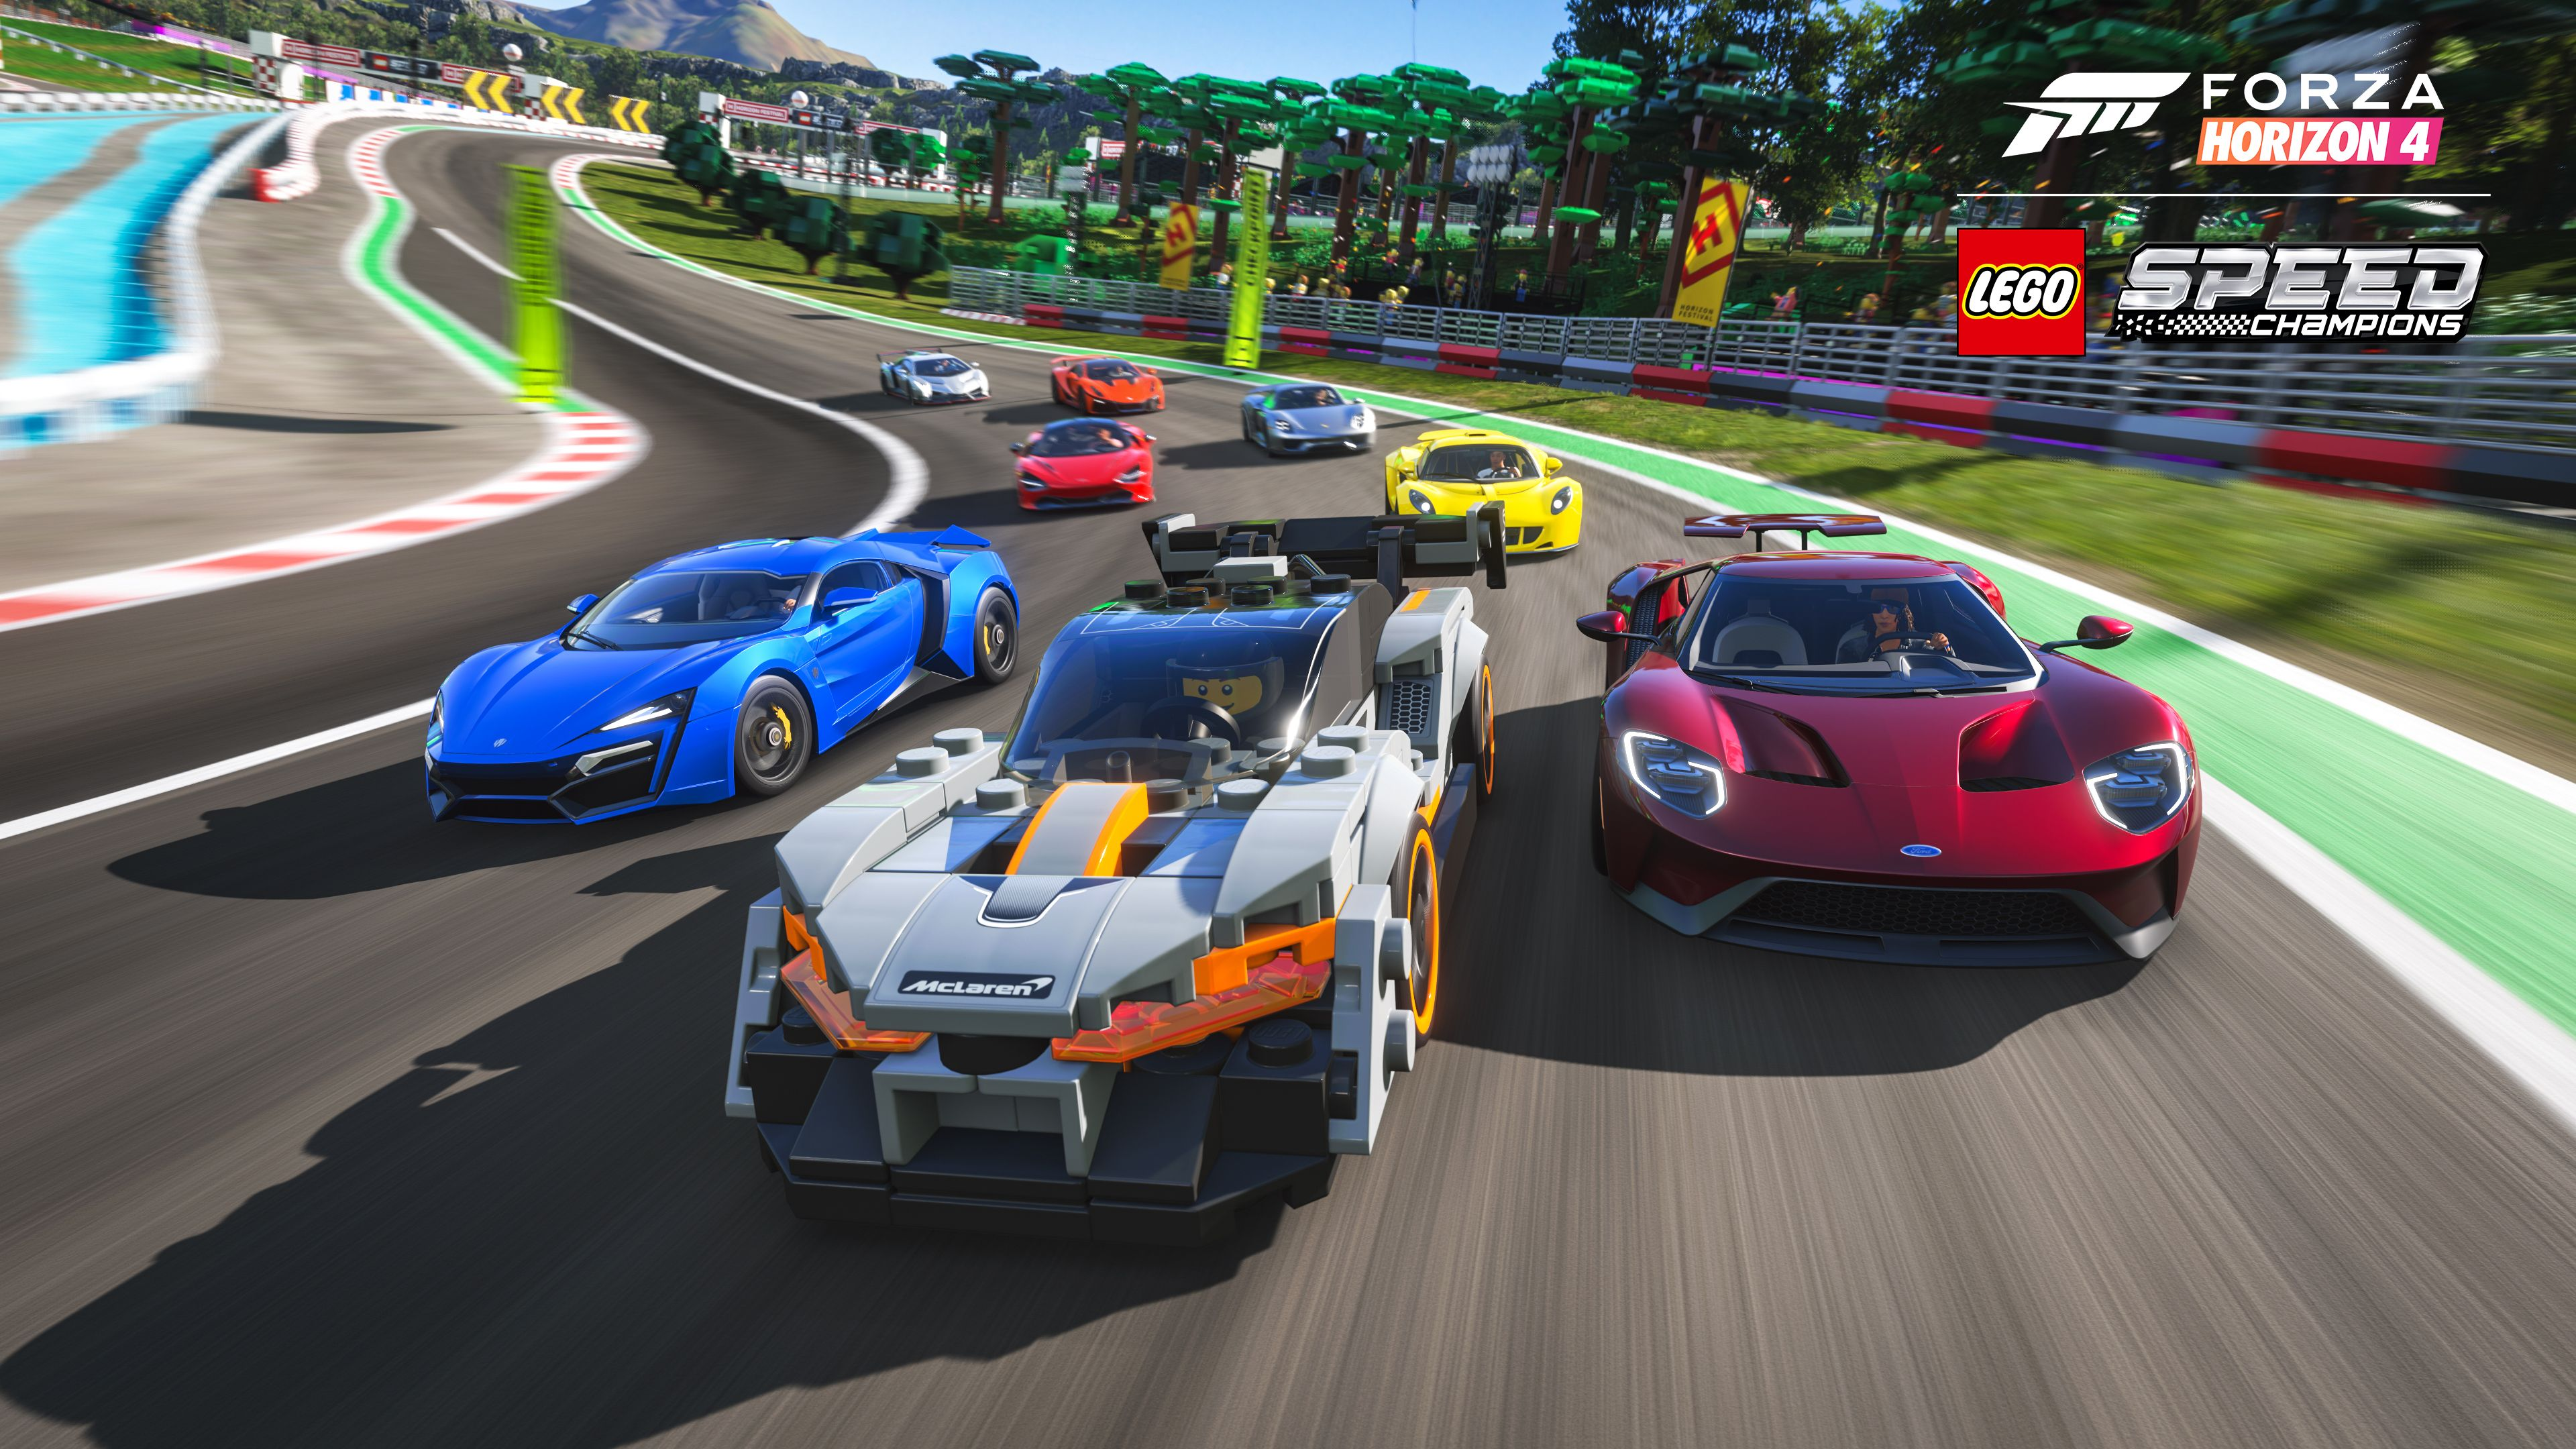 How To Get Lego Cars In Forza Horizon 4